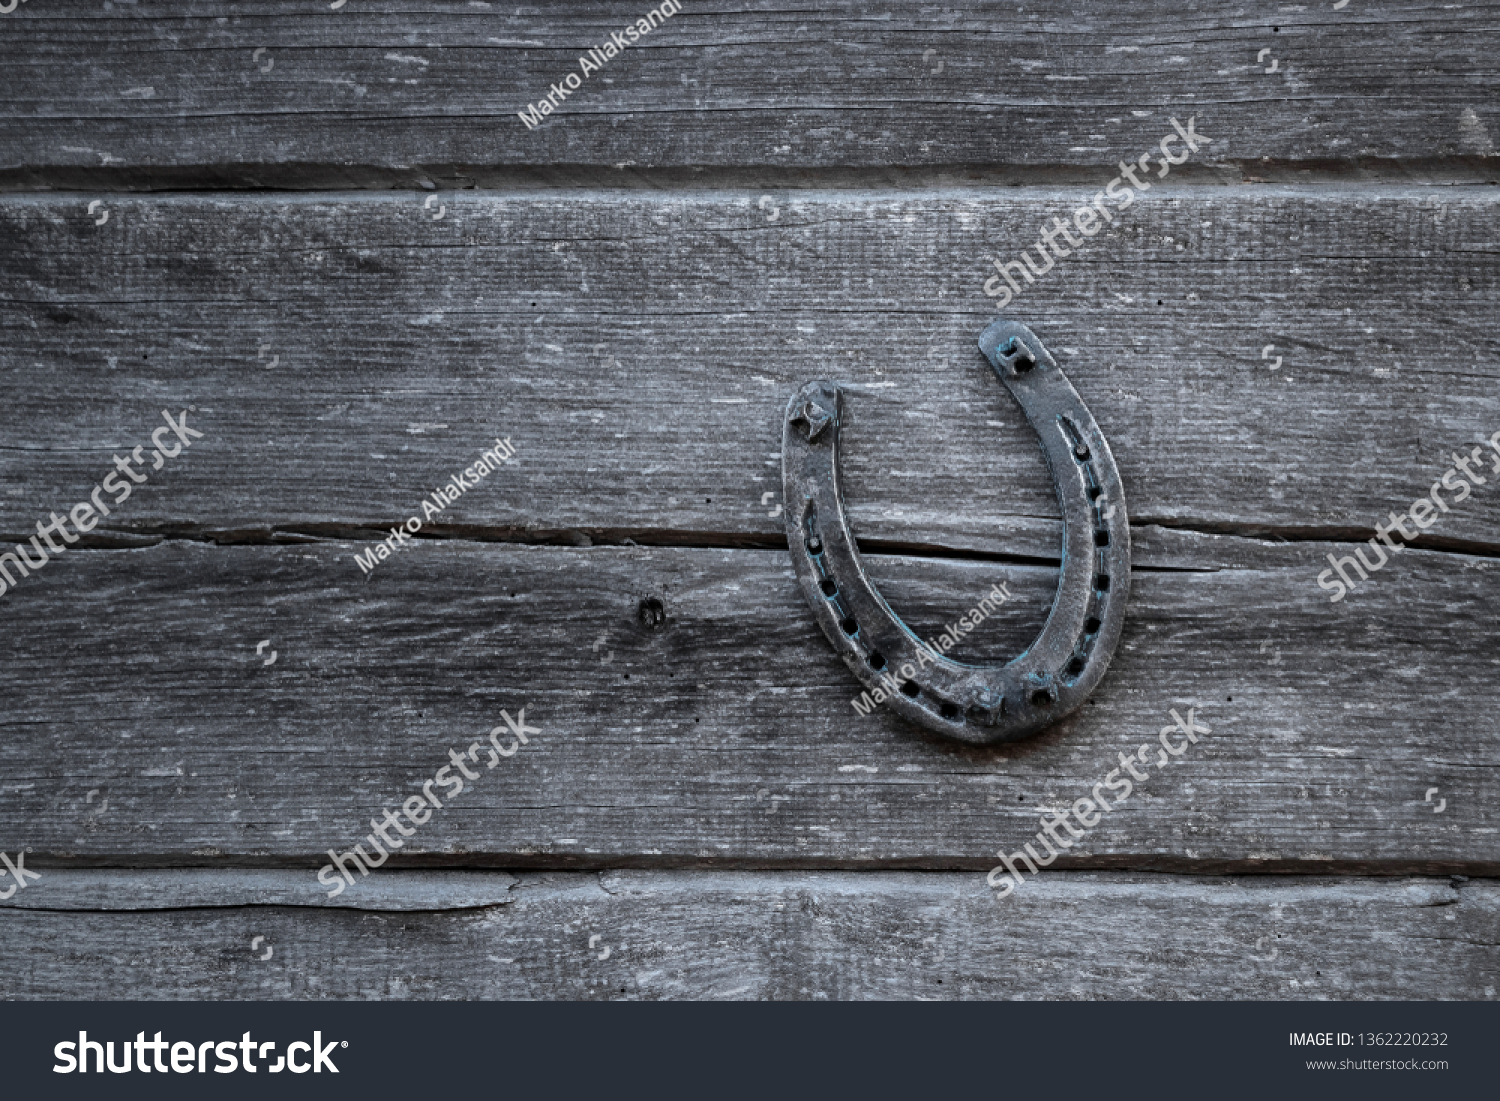 Old horseshoe on an old wooden board. The concept of luck, luck, luck. #1362220232